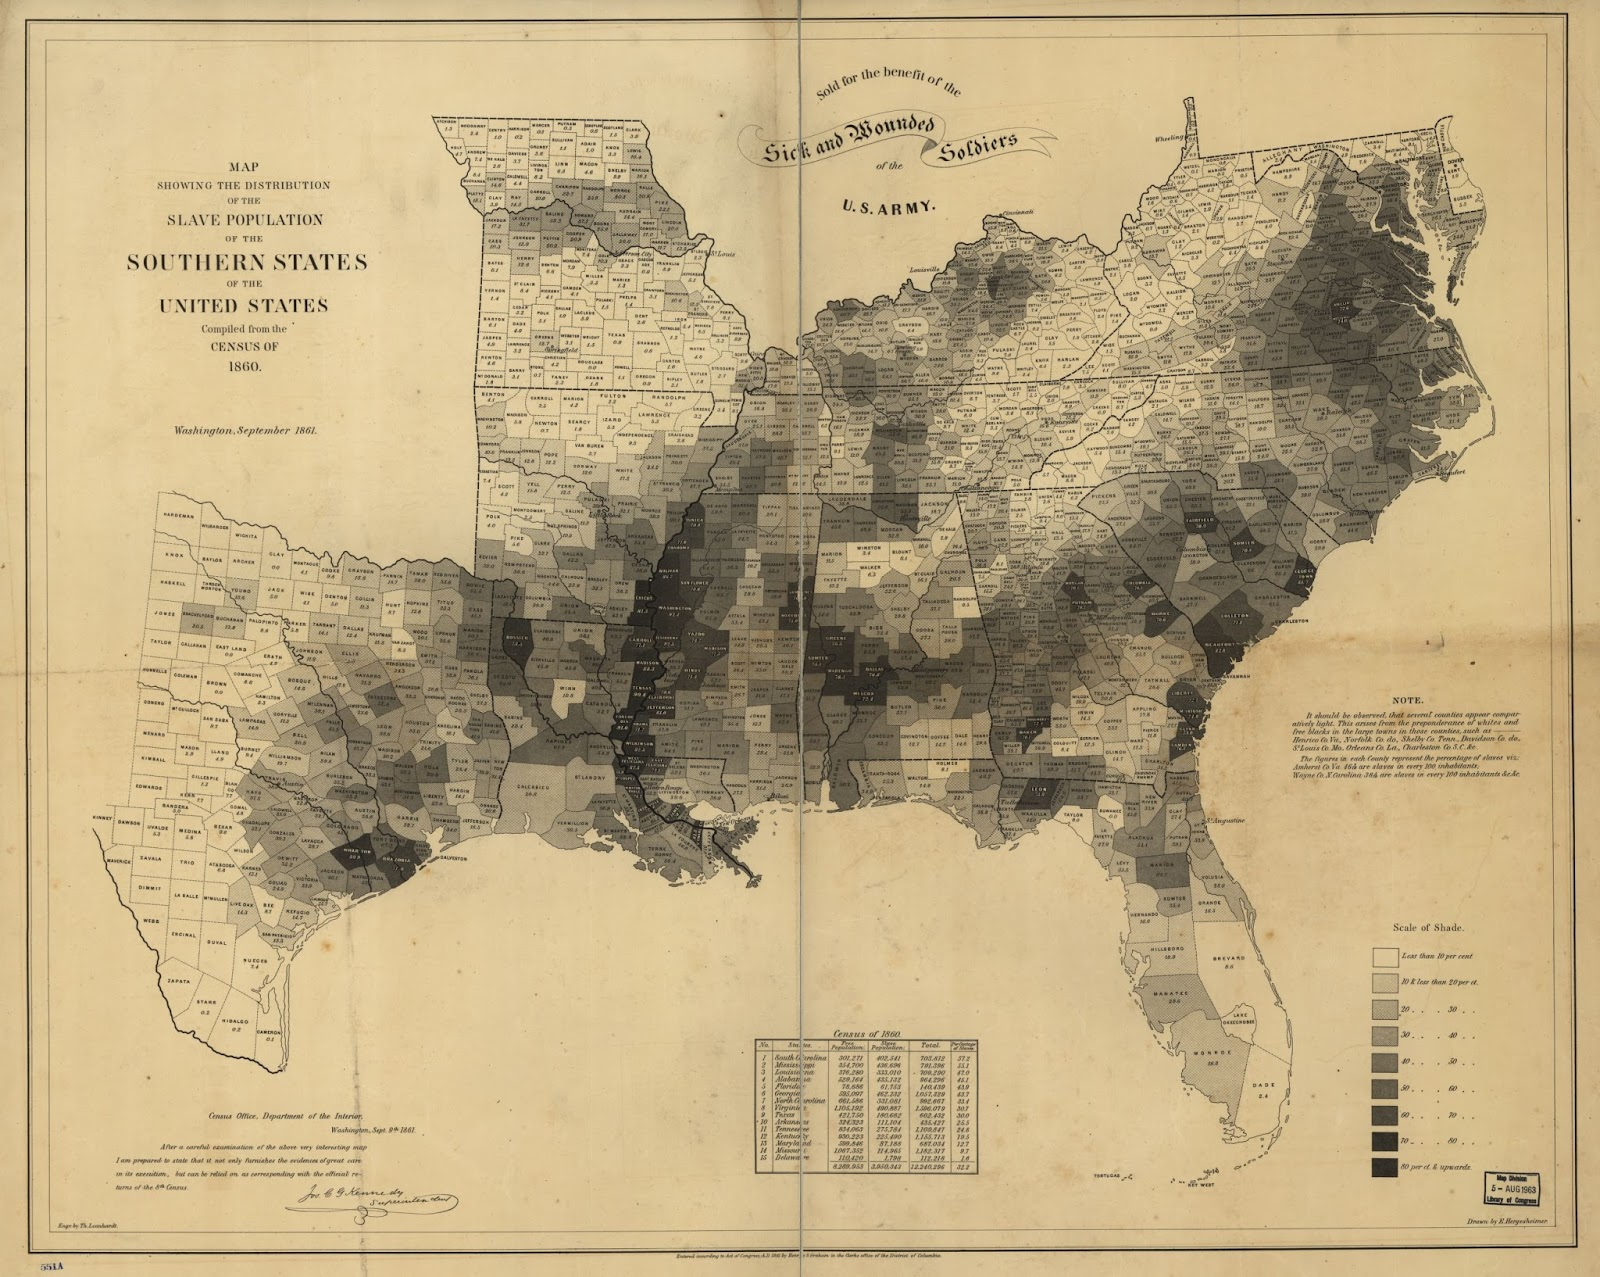 map showing the distribution of the slave population in the southern states 1860